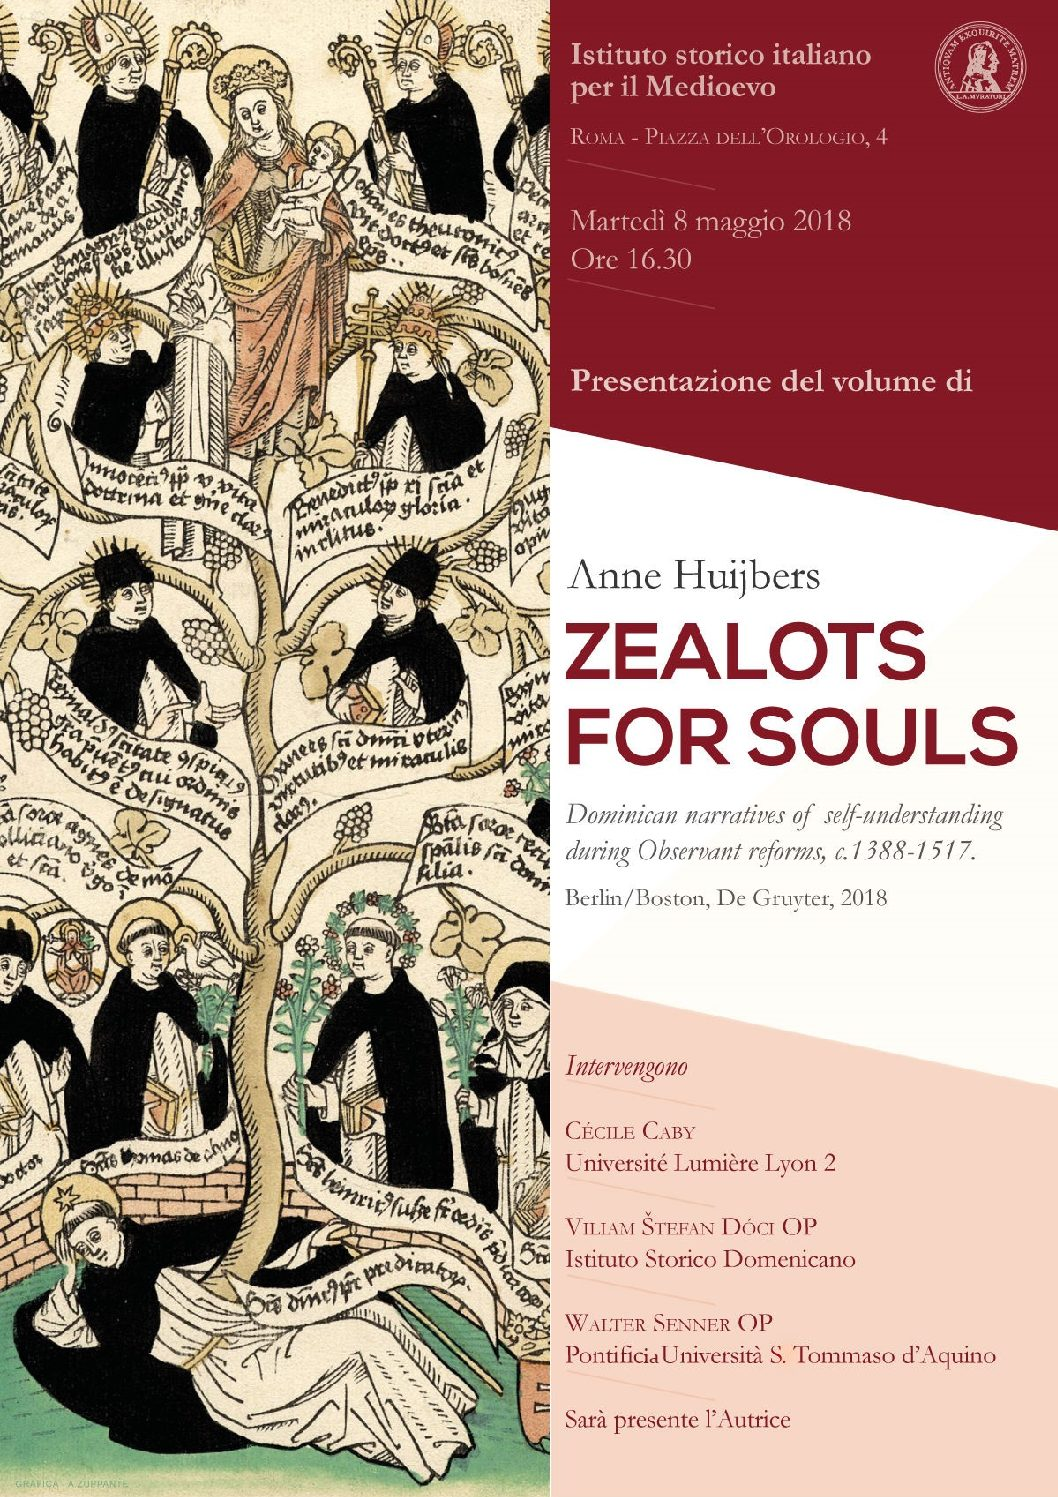 Anne Huijbers, Zealots for Souls. Dominican Narratives of Self Understanding during Observant Reforms, c. 1388-1517